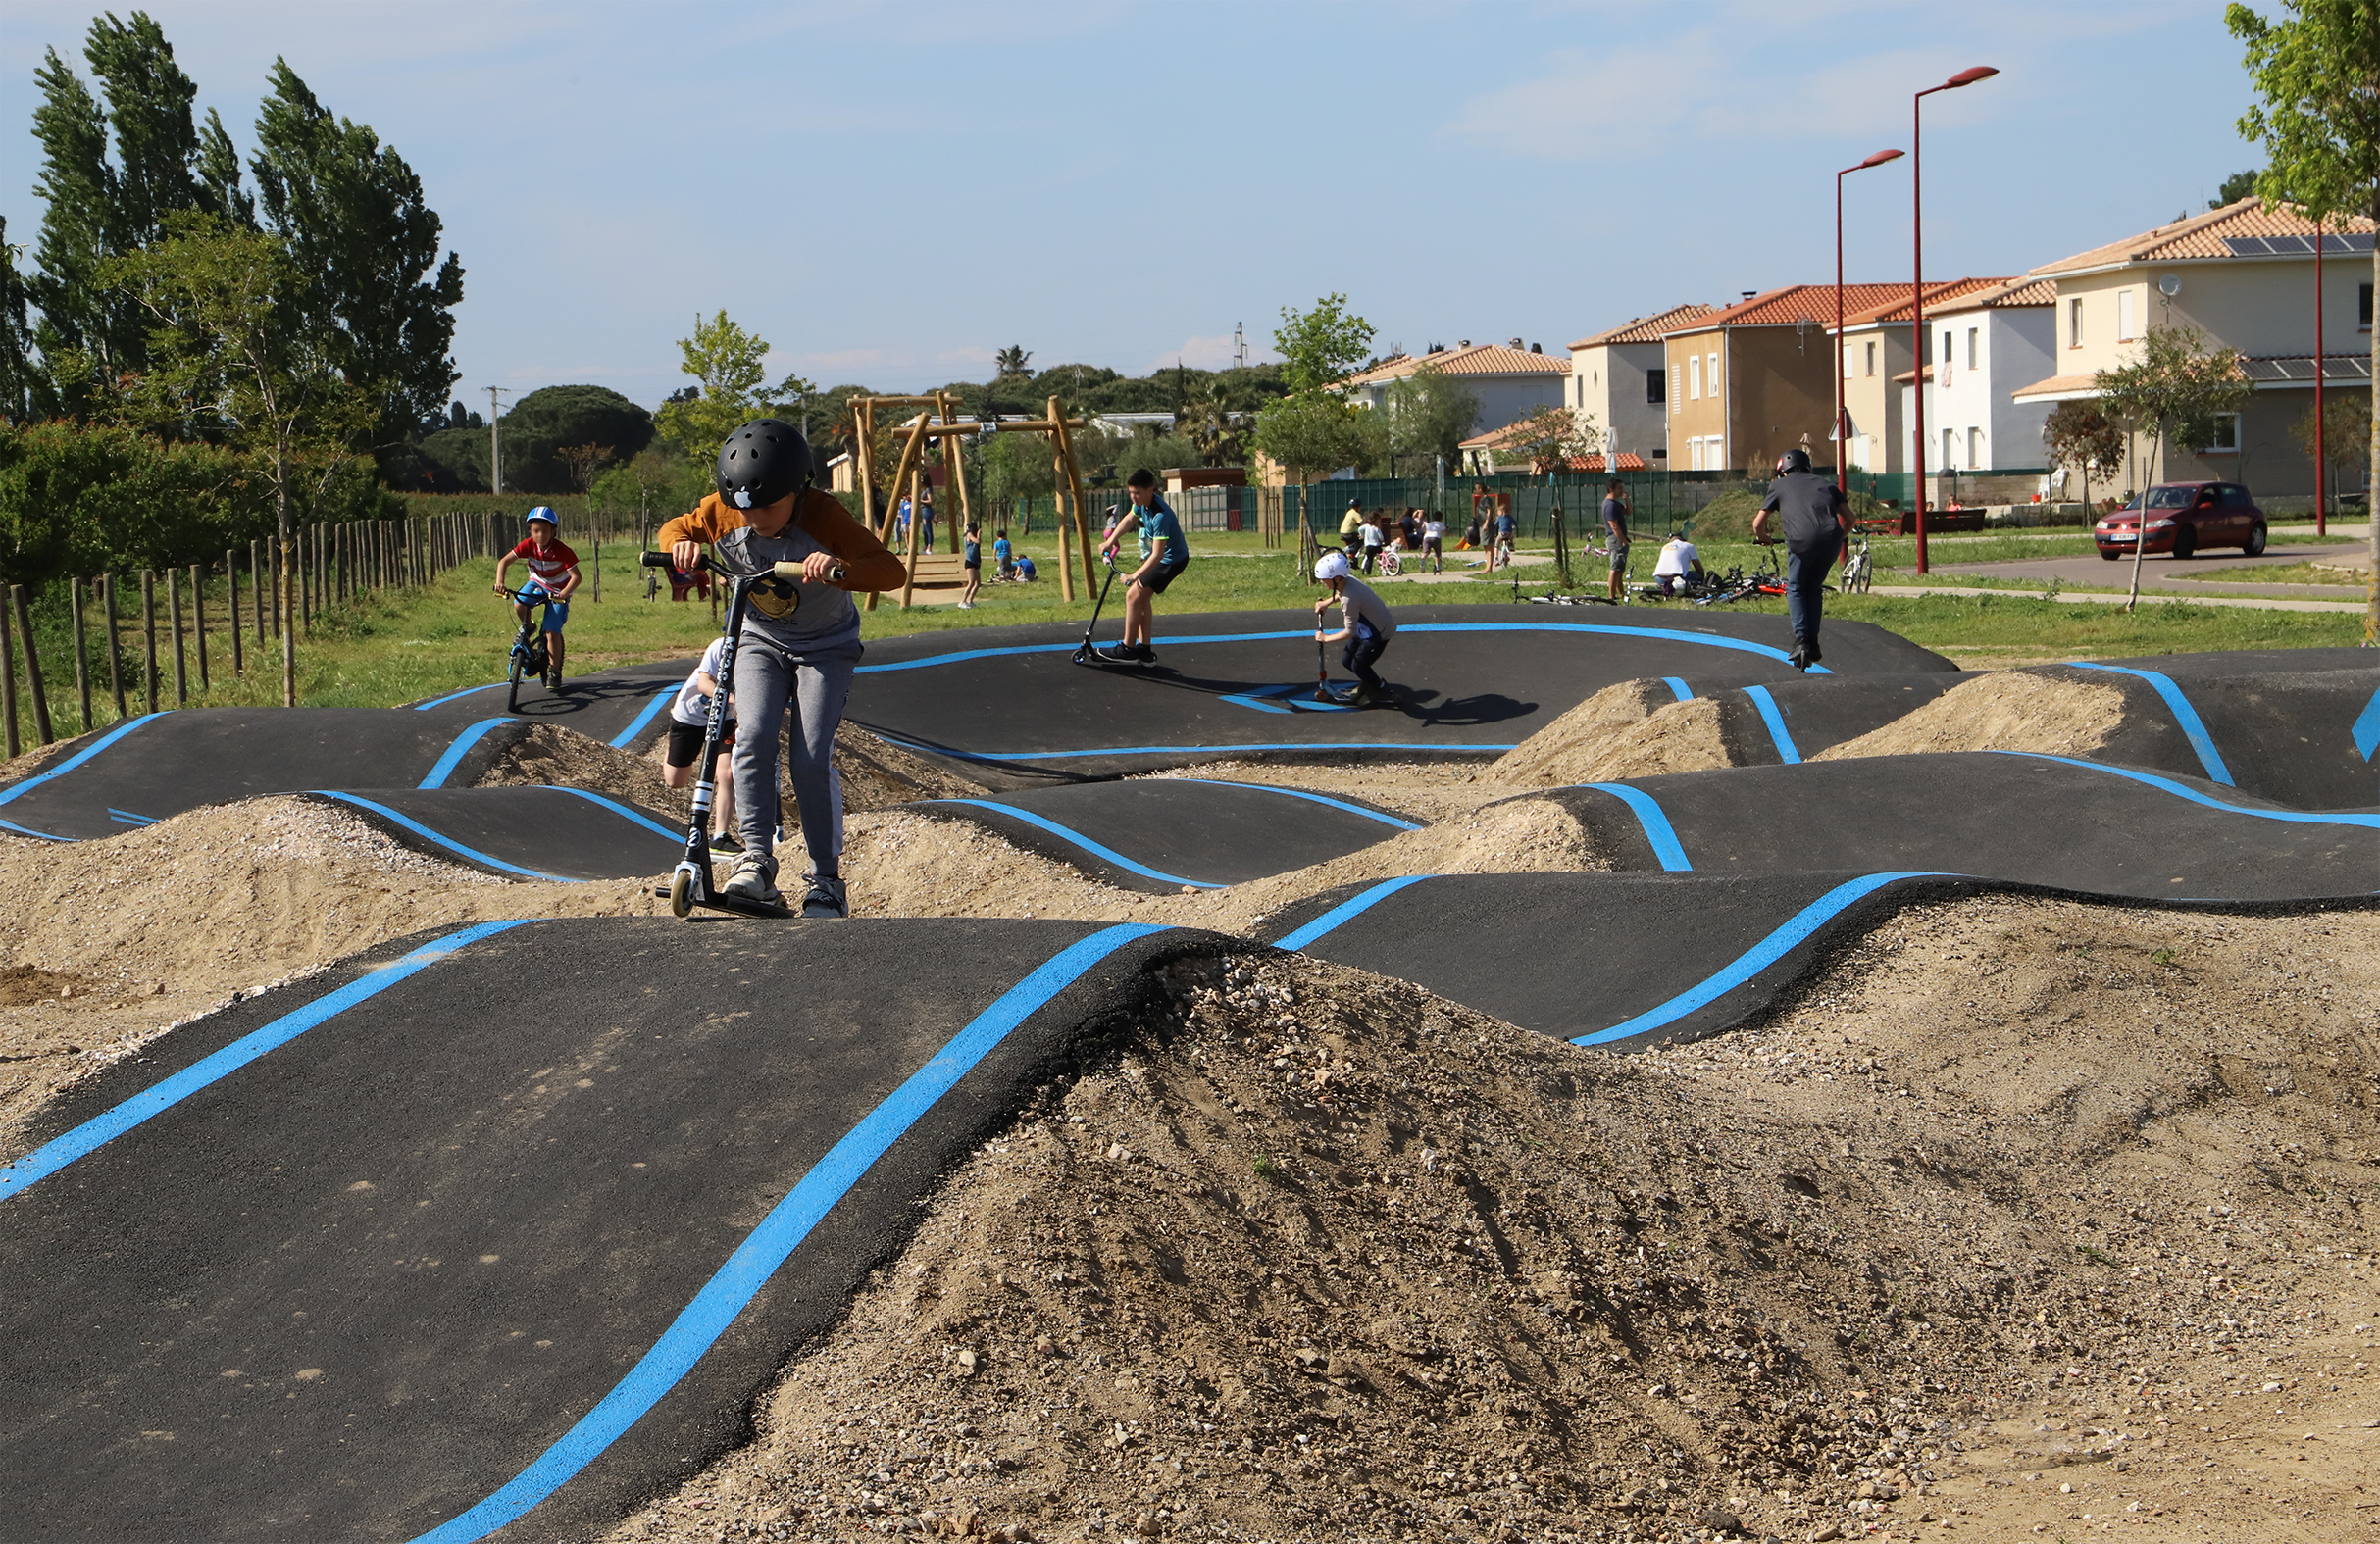 2019 05 01Pumptrack021